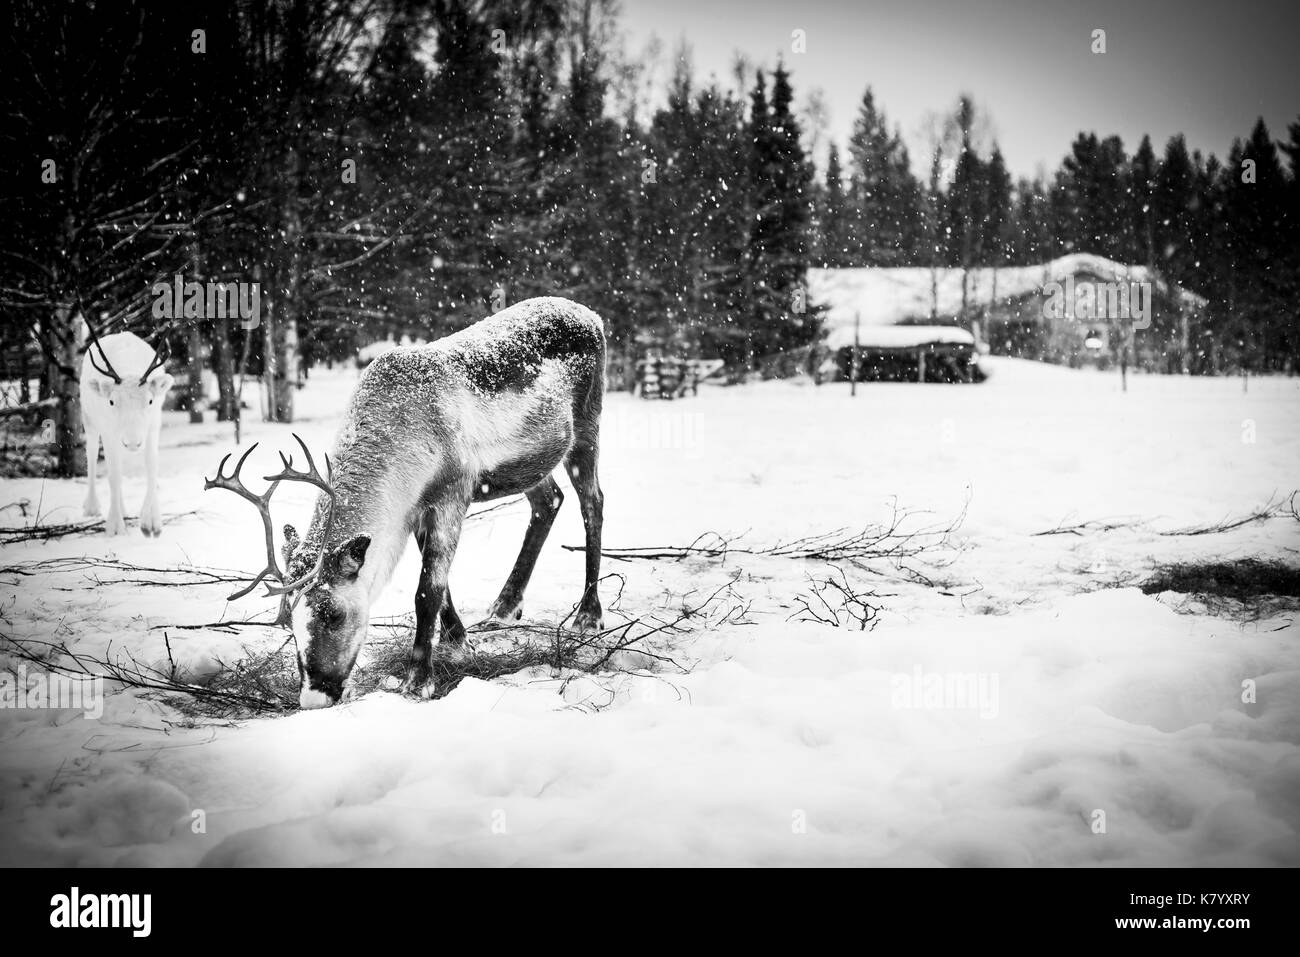 Reindeer feeding in the snow, Lapland, Finland Stock Photo